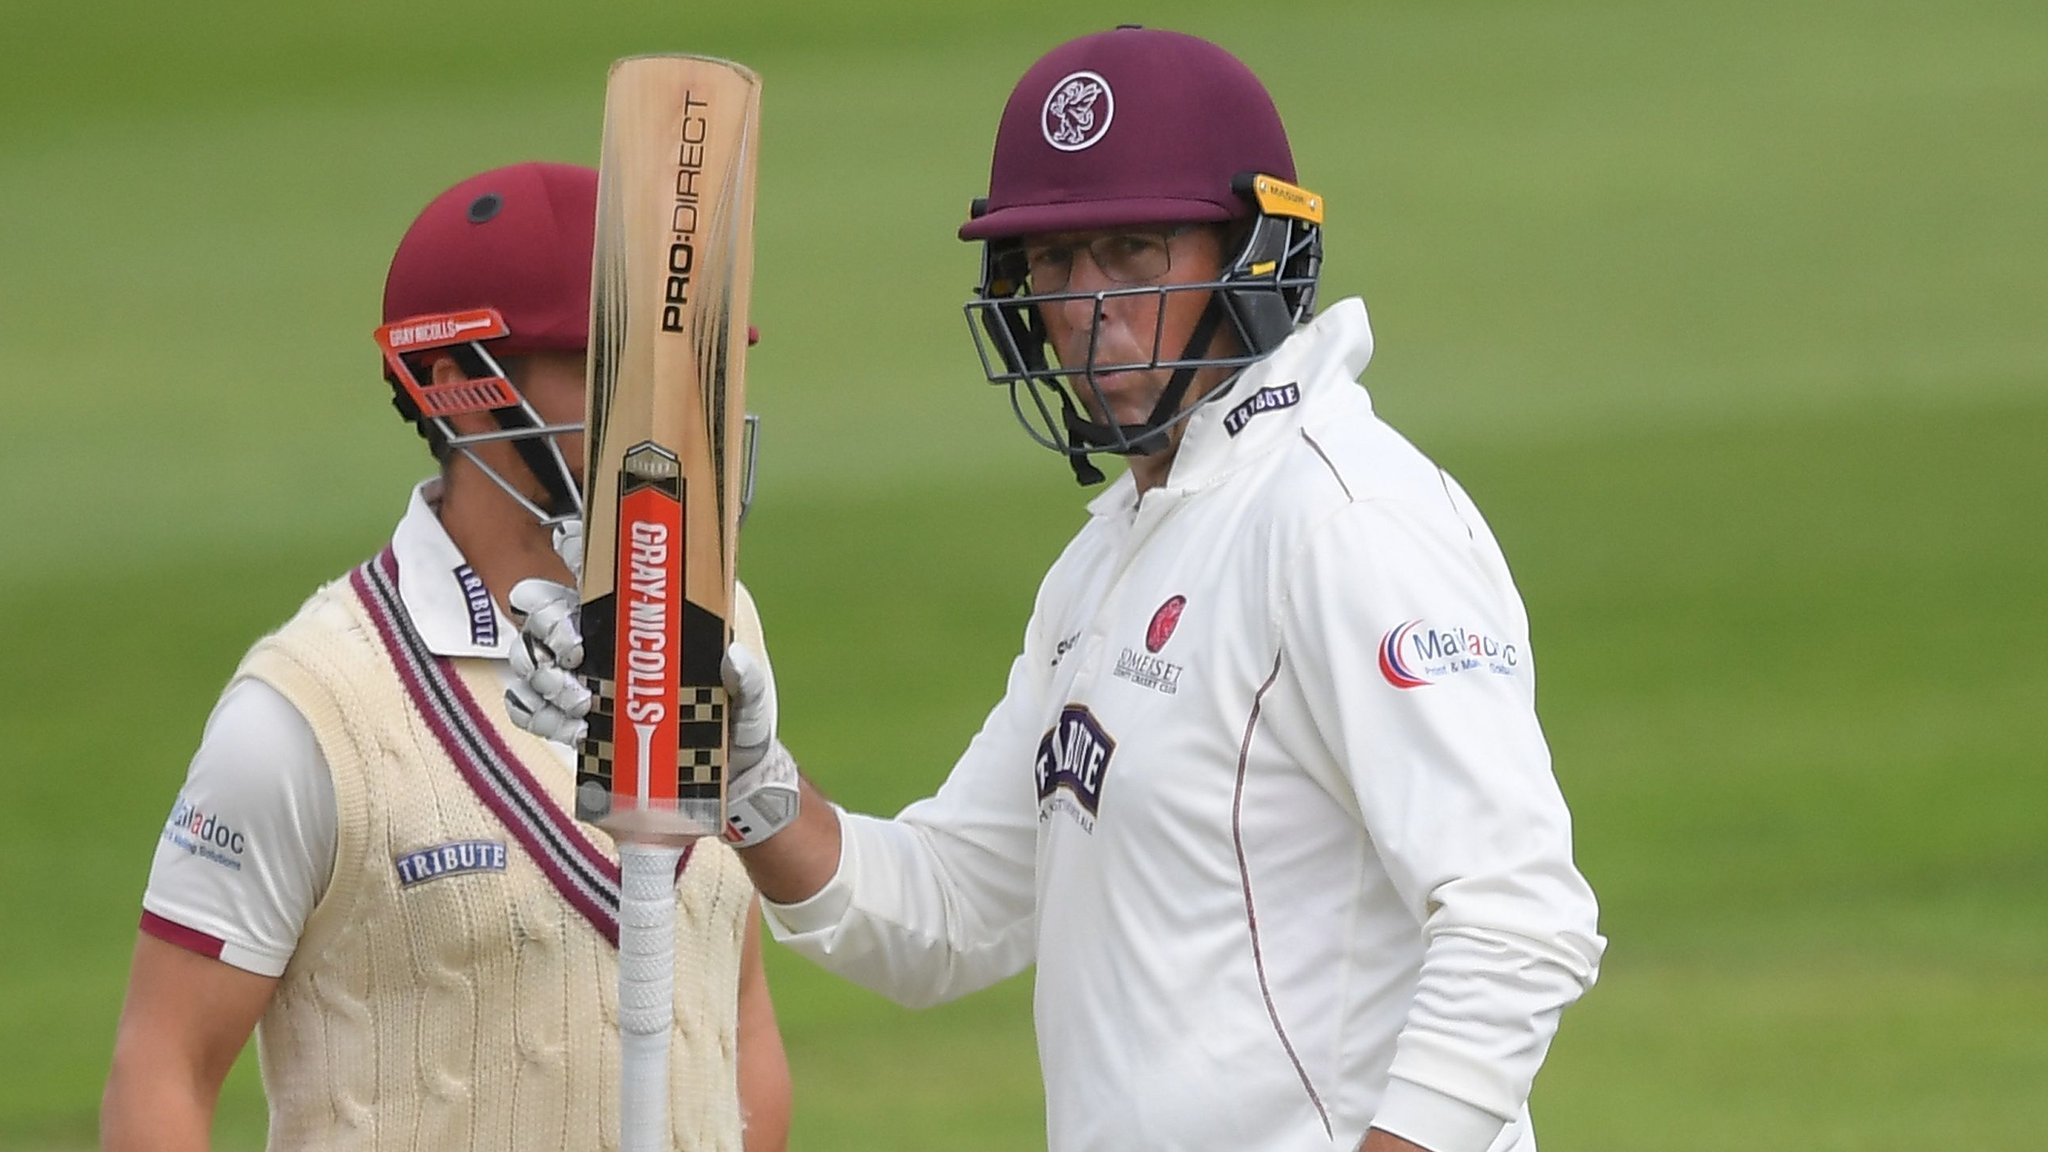 County Championship: Marcus Trescothick hits 95 as Somerset shade battling Essex